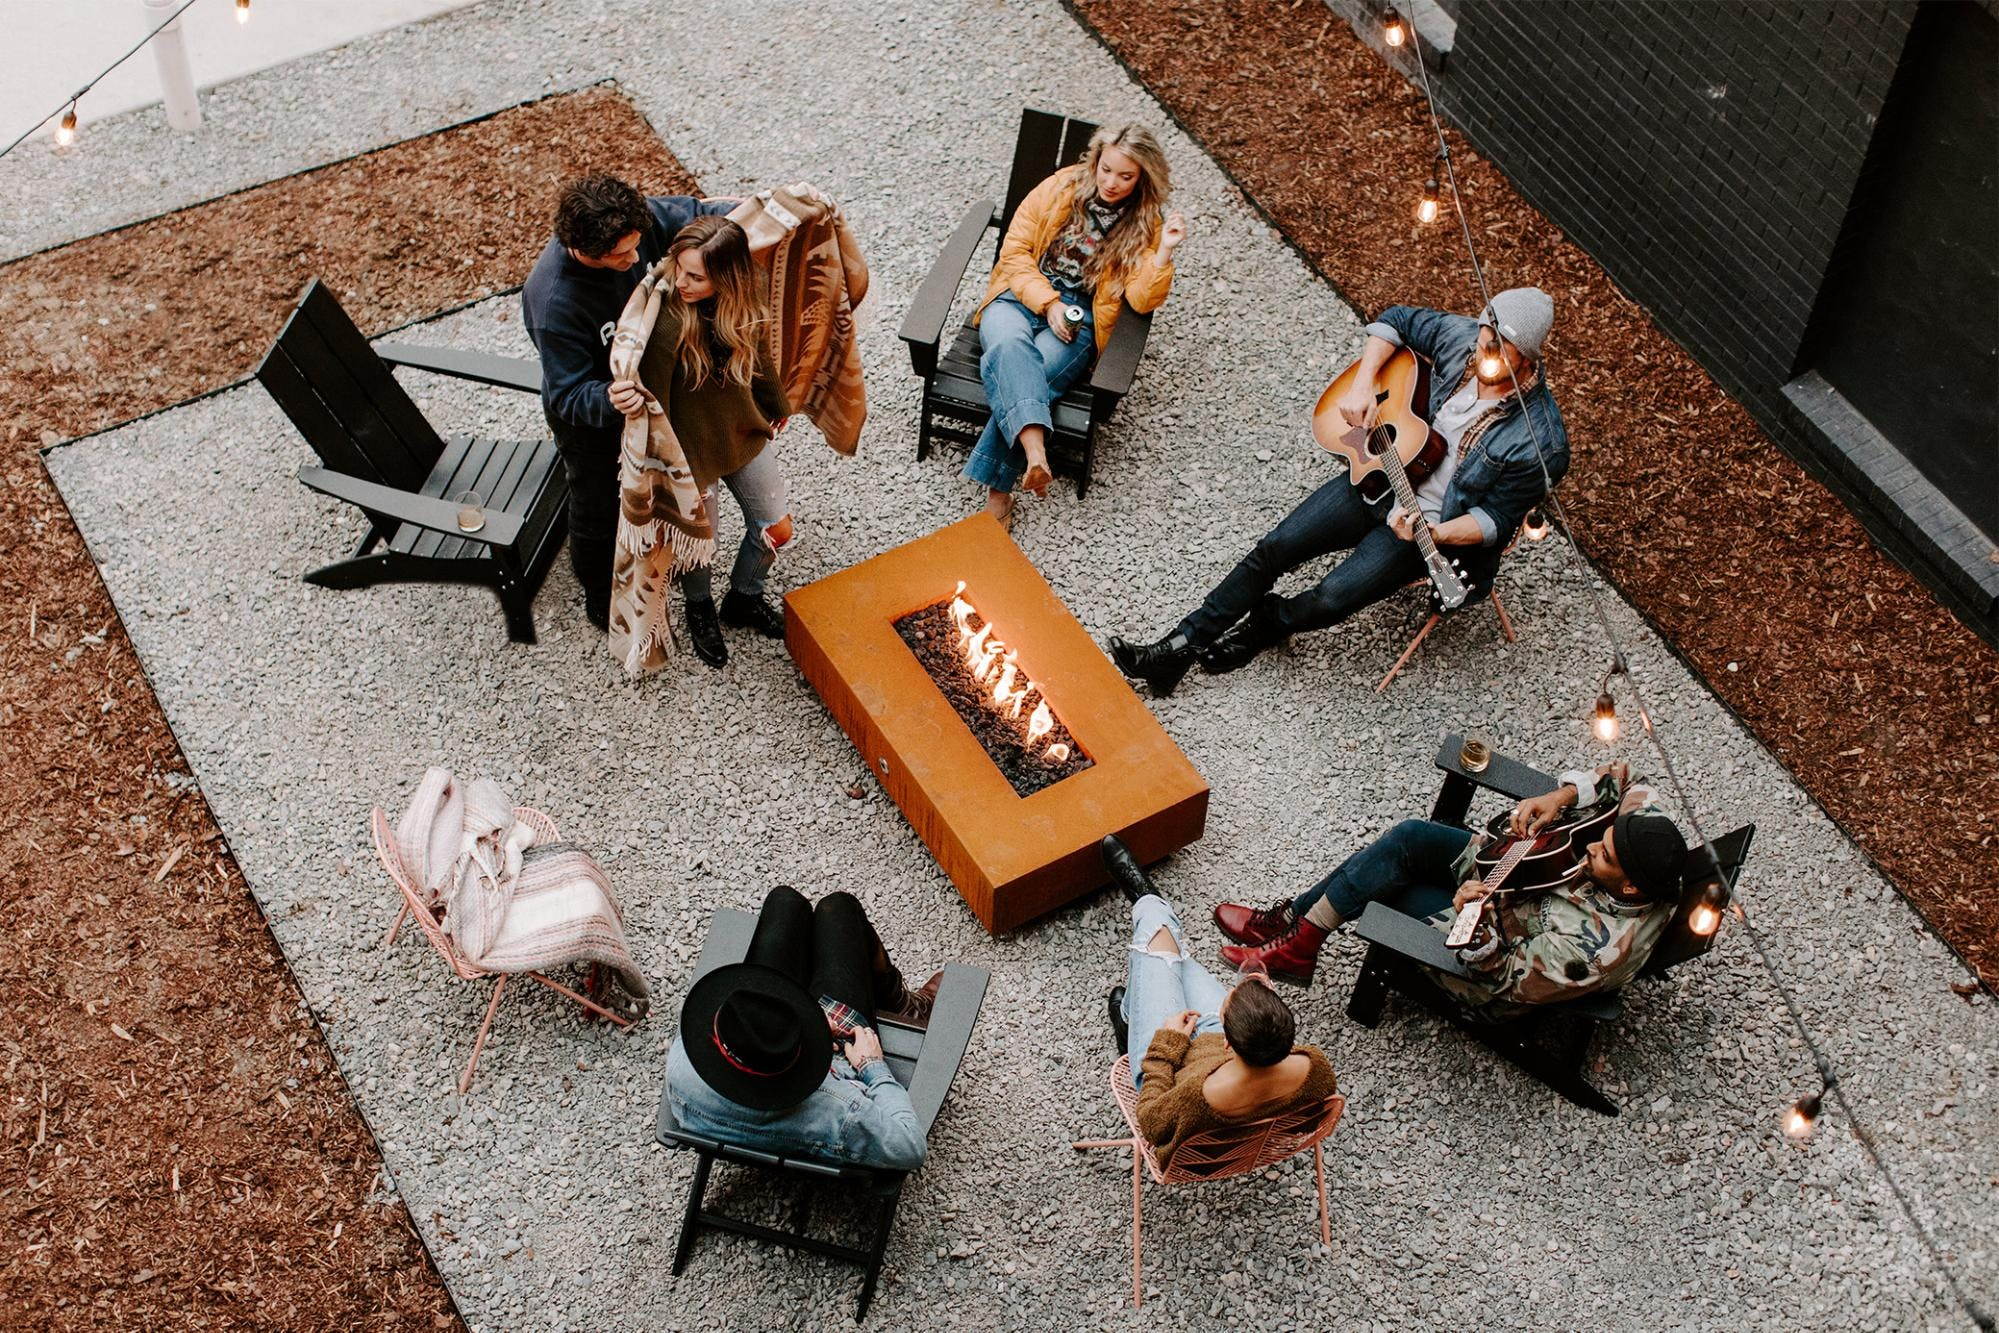 People around firepit